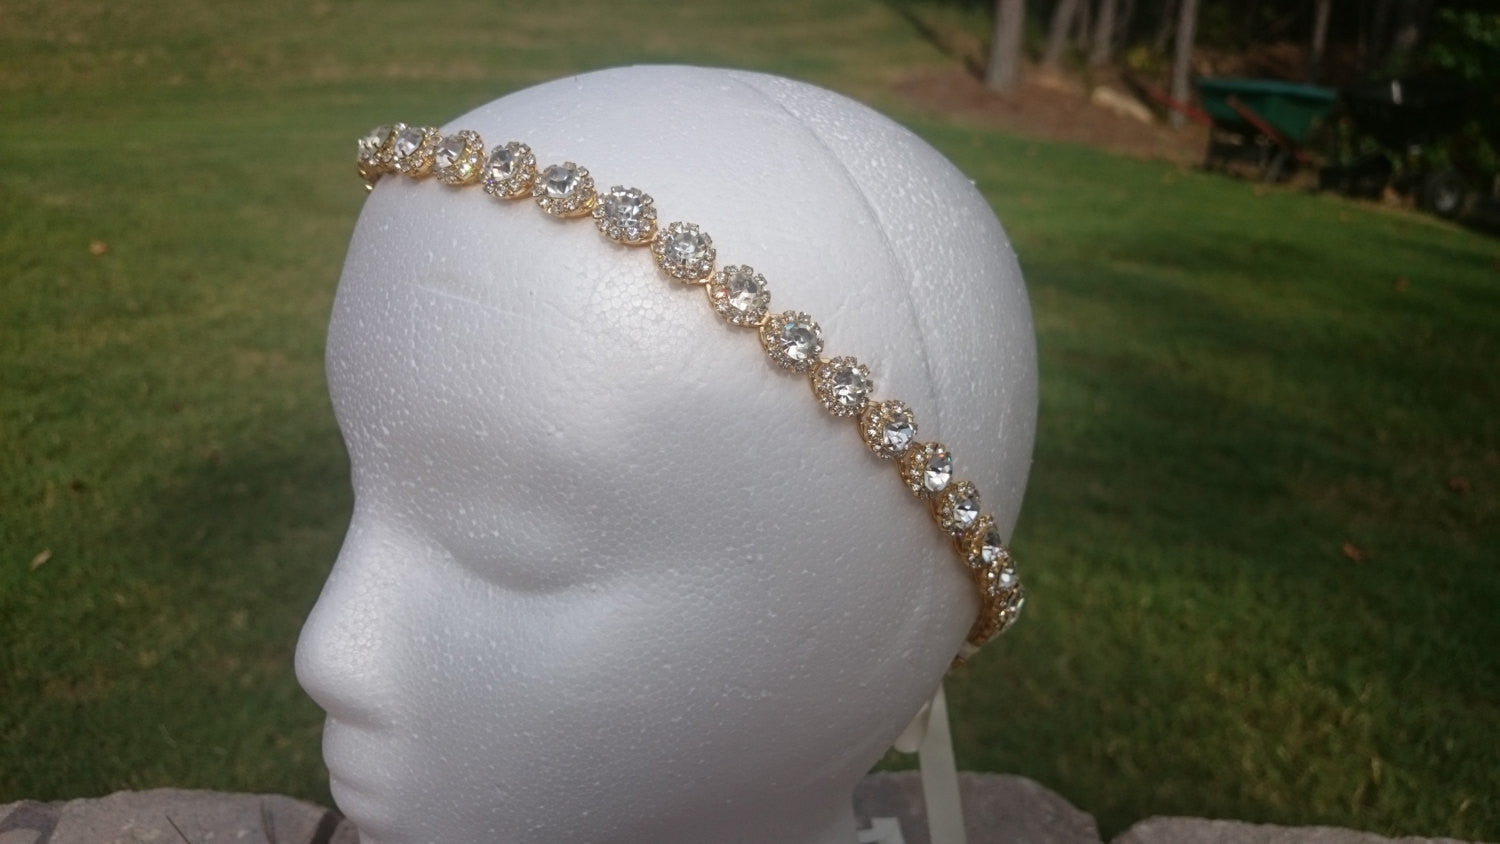 Rose Gold Headband, Rhinestone Headband, Rhinestone Belt, Headband, Bridal Gown, Wedding Dress, Accessory, Rose Gold Halo, Tiara